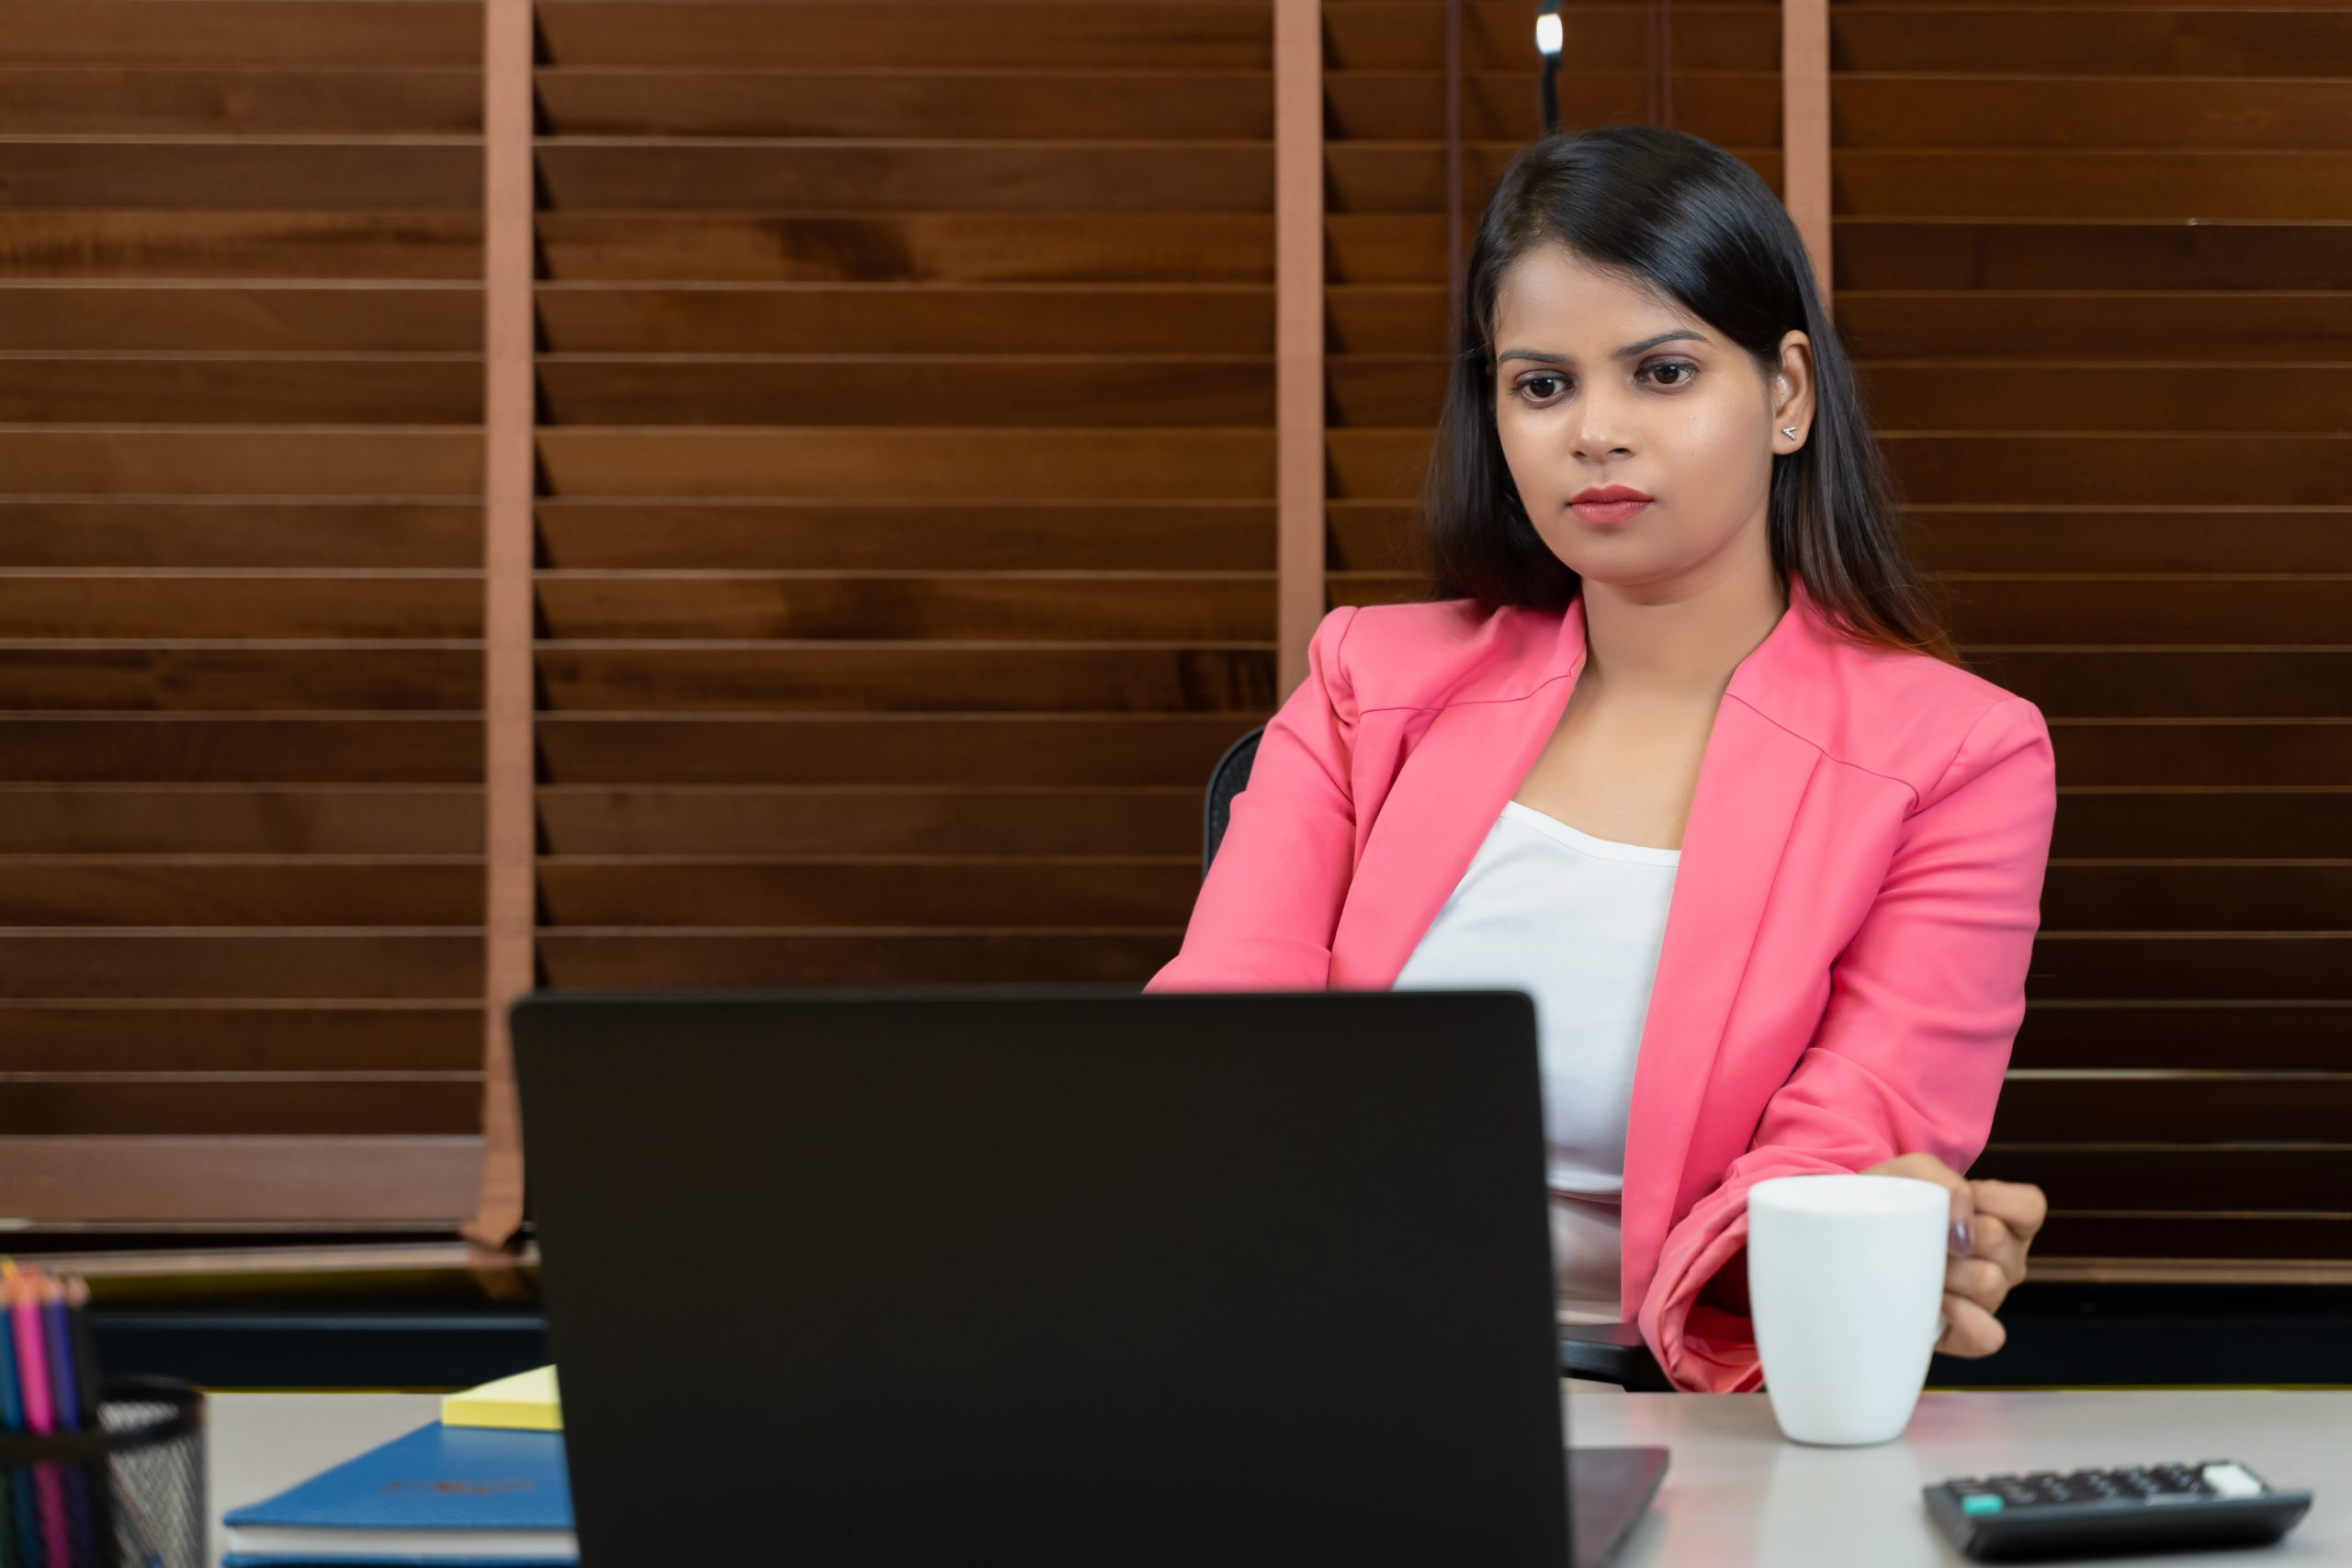 Young professional working in office